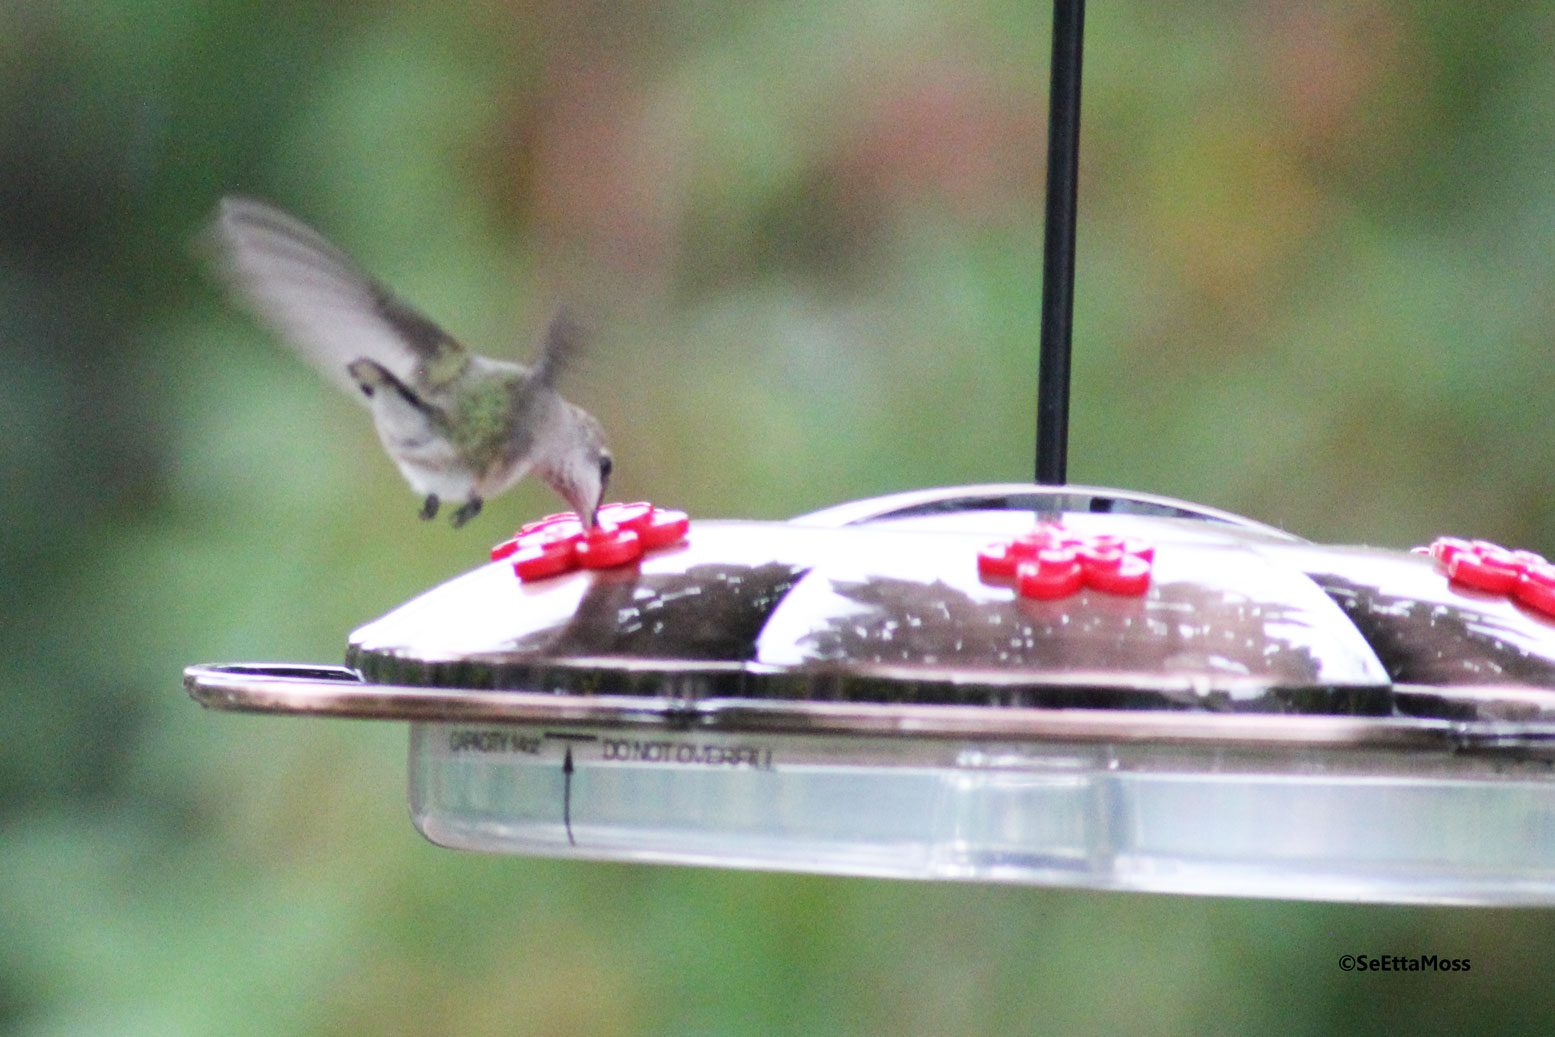 And These Saucer Type Feeders Are Simple A Bowl Lid Support Rod That Secures The Plus Functions As Hanger